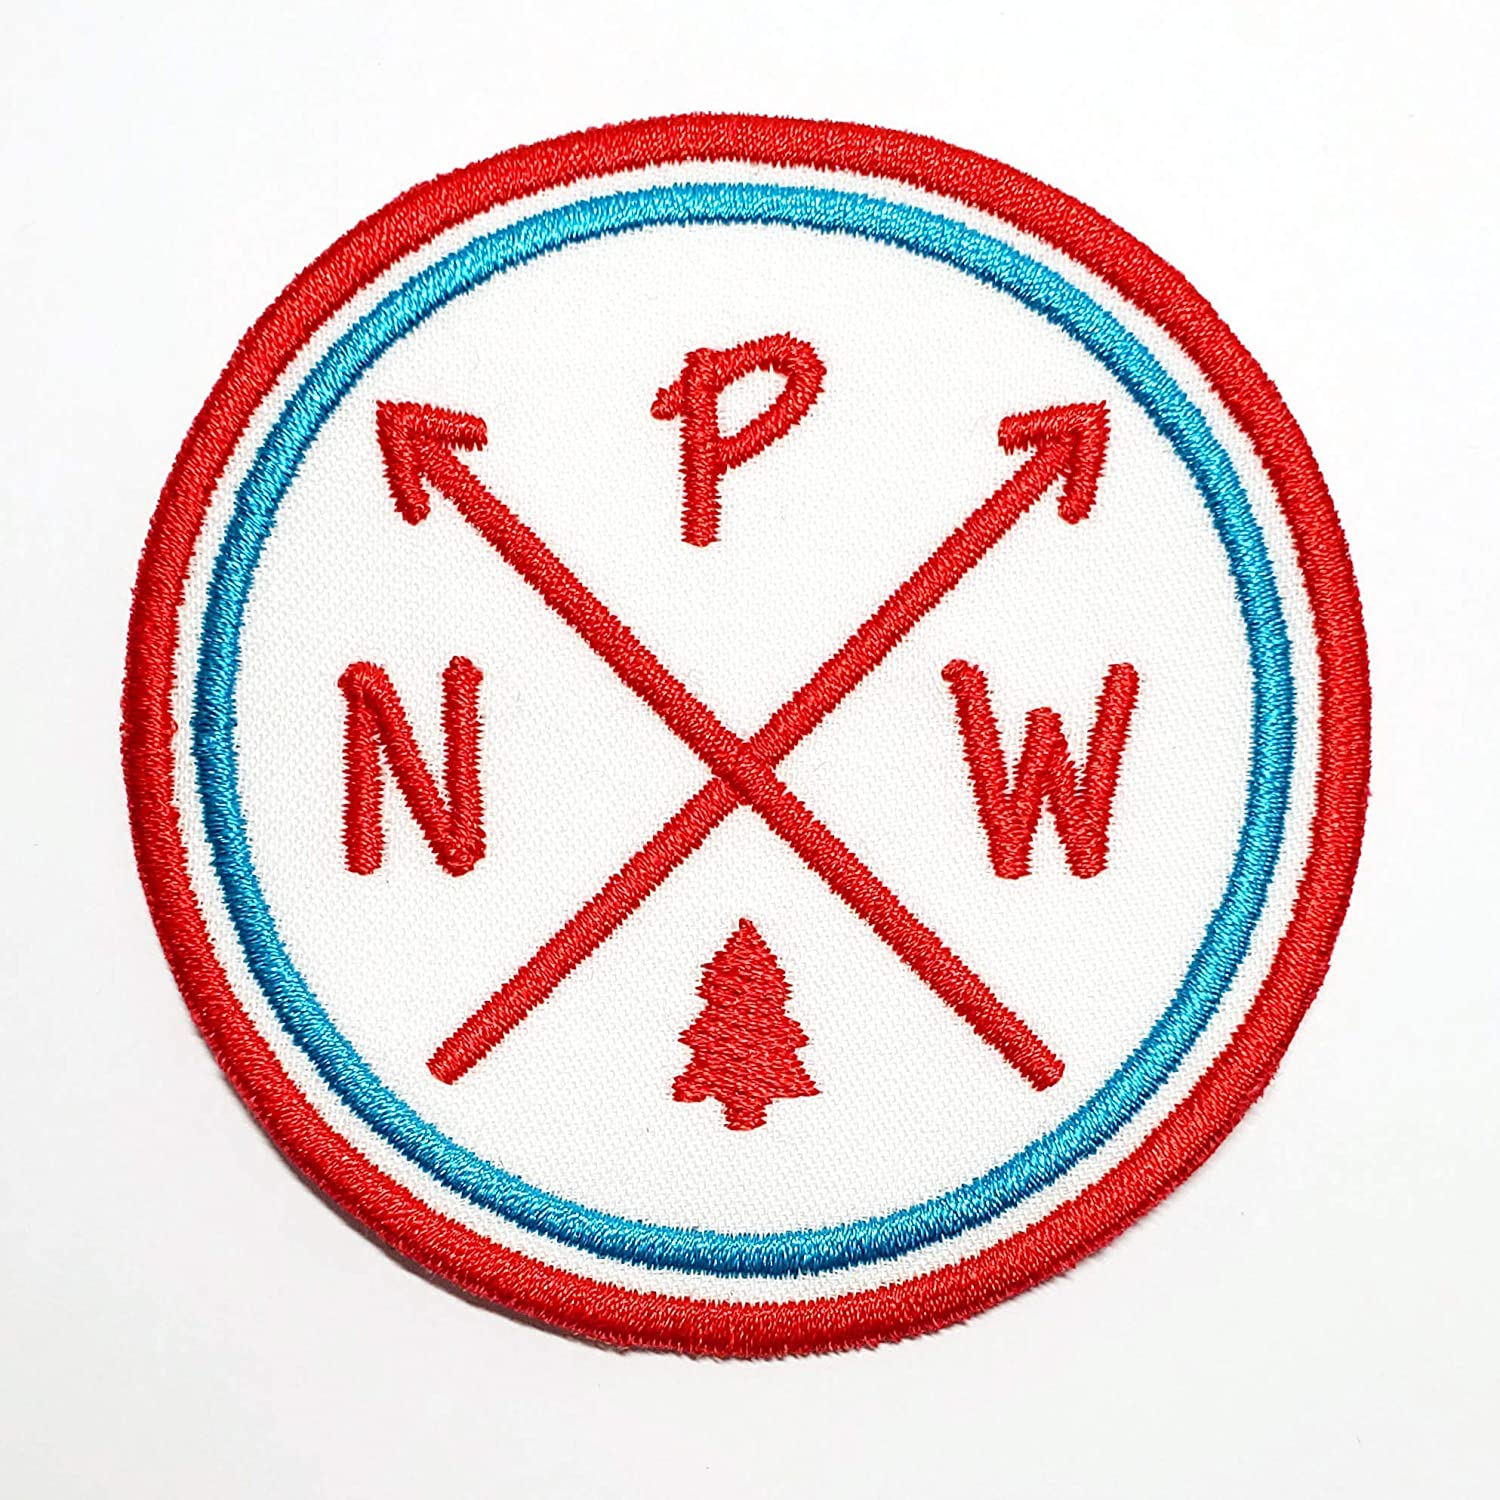 PNW NEW Pacific Northwest Patch Iron-on NEW before selling ☆ Embroider Applique or Sew-on